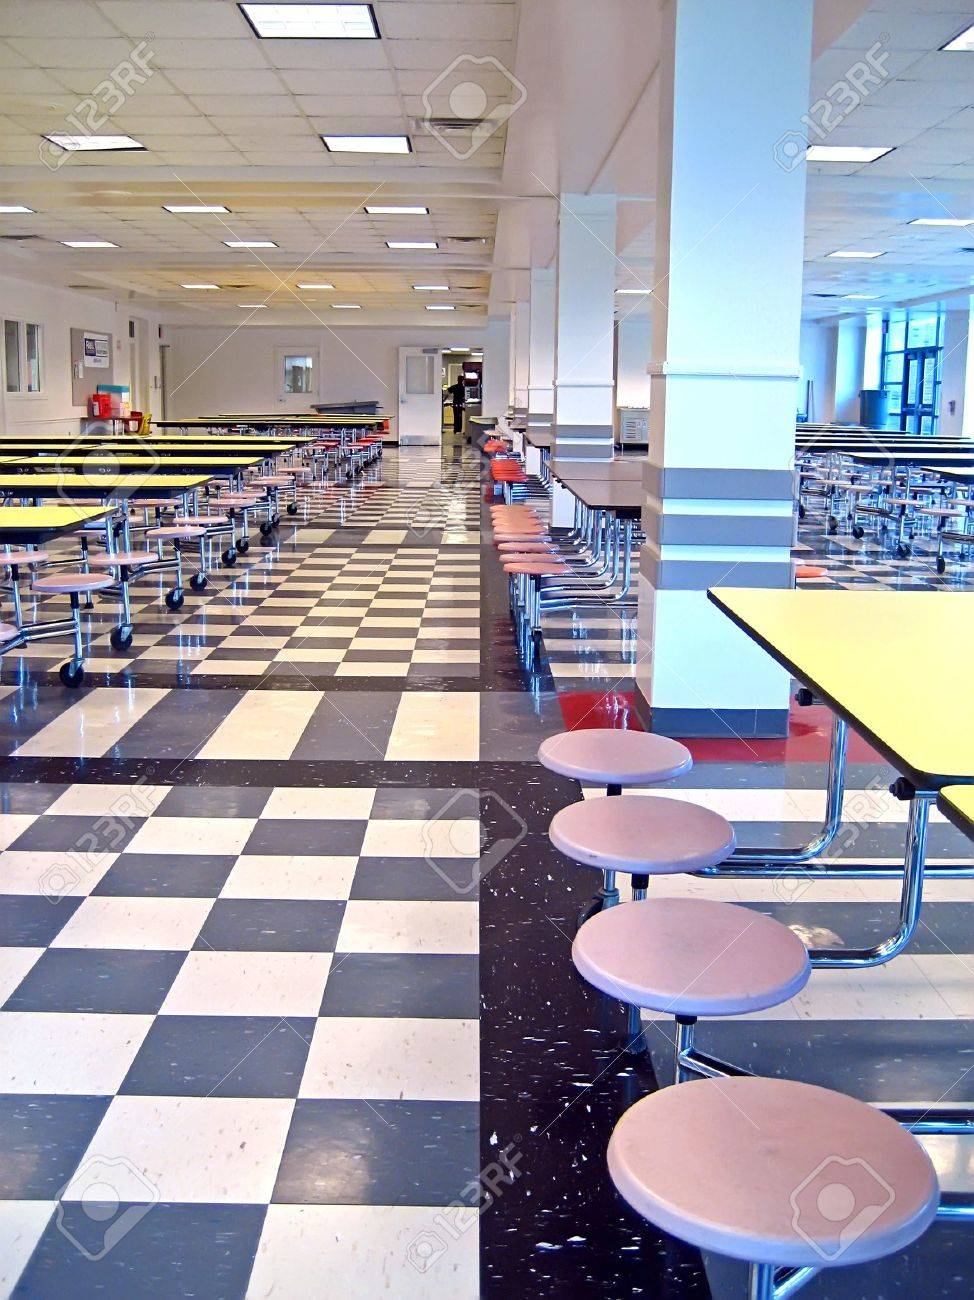 Clean cafeteria tables - Clean School Cafeteria With Many Empty Seats And Tables Stock Photo 608377